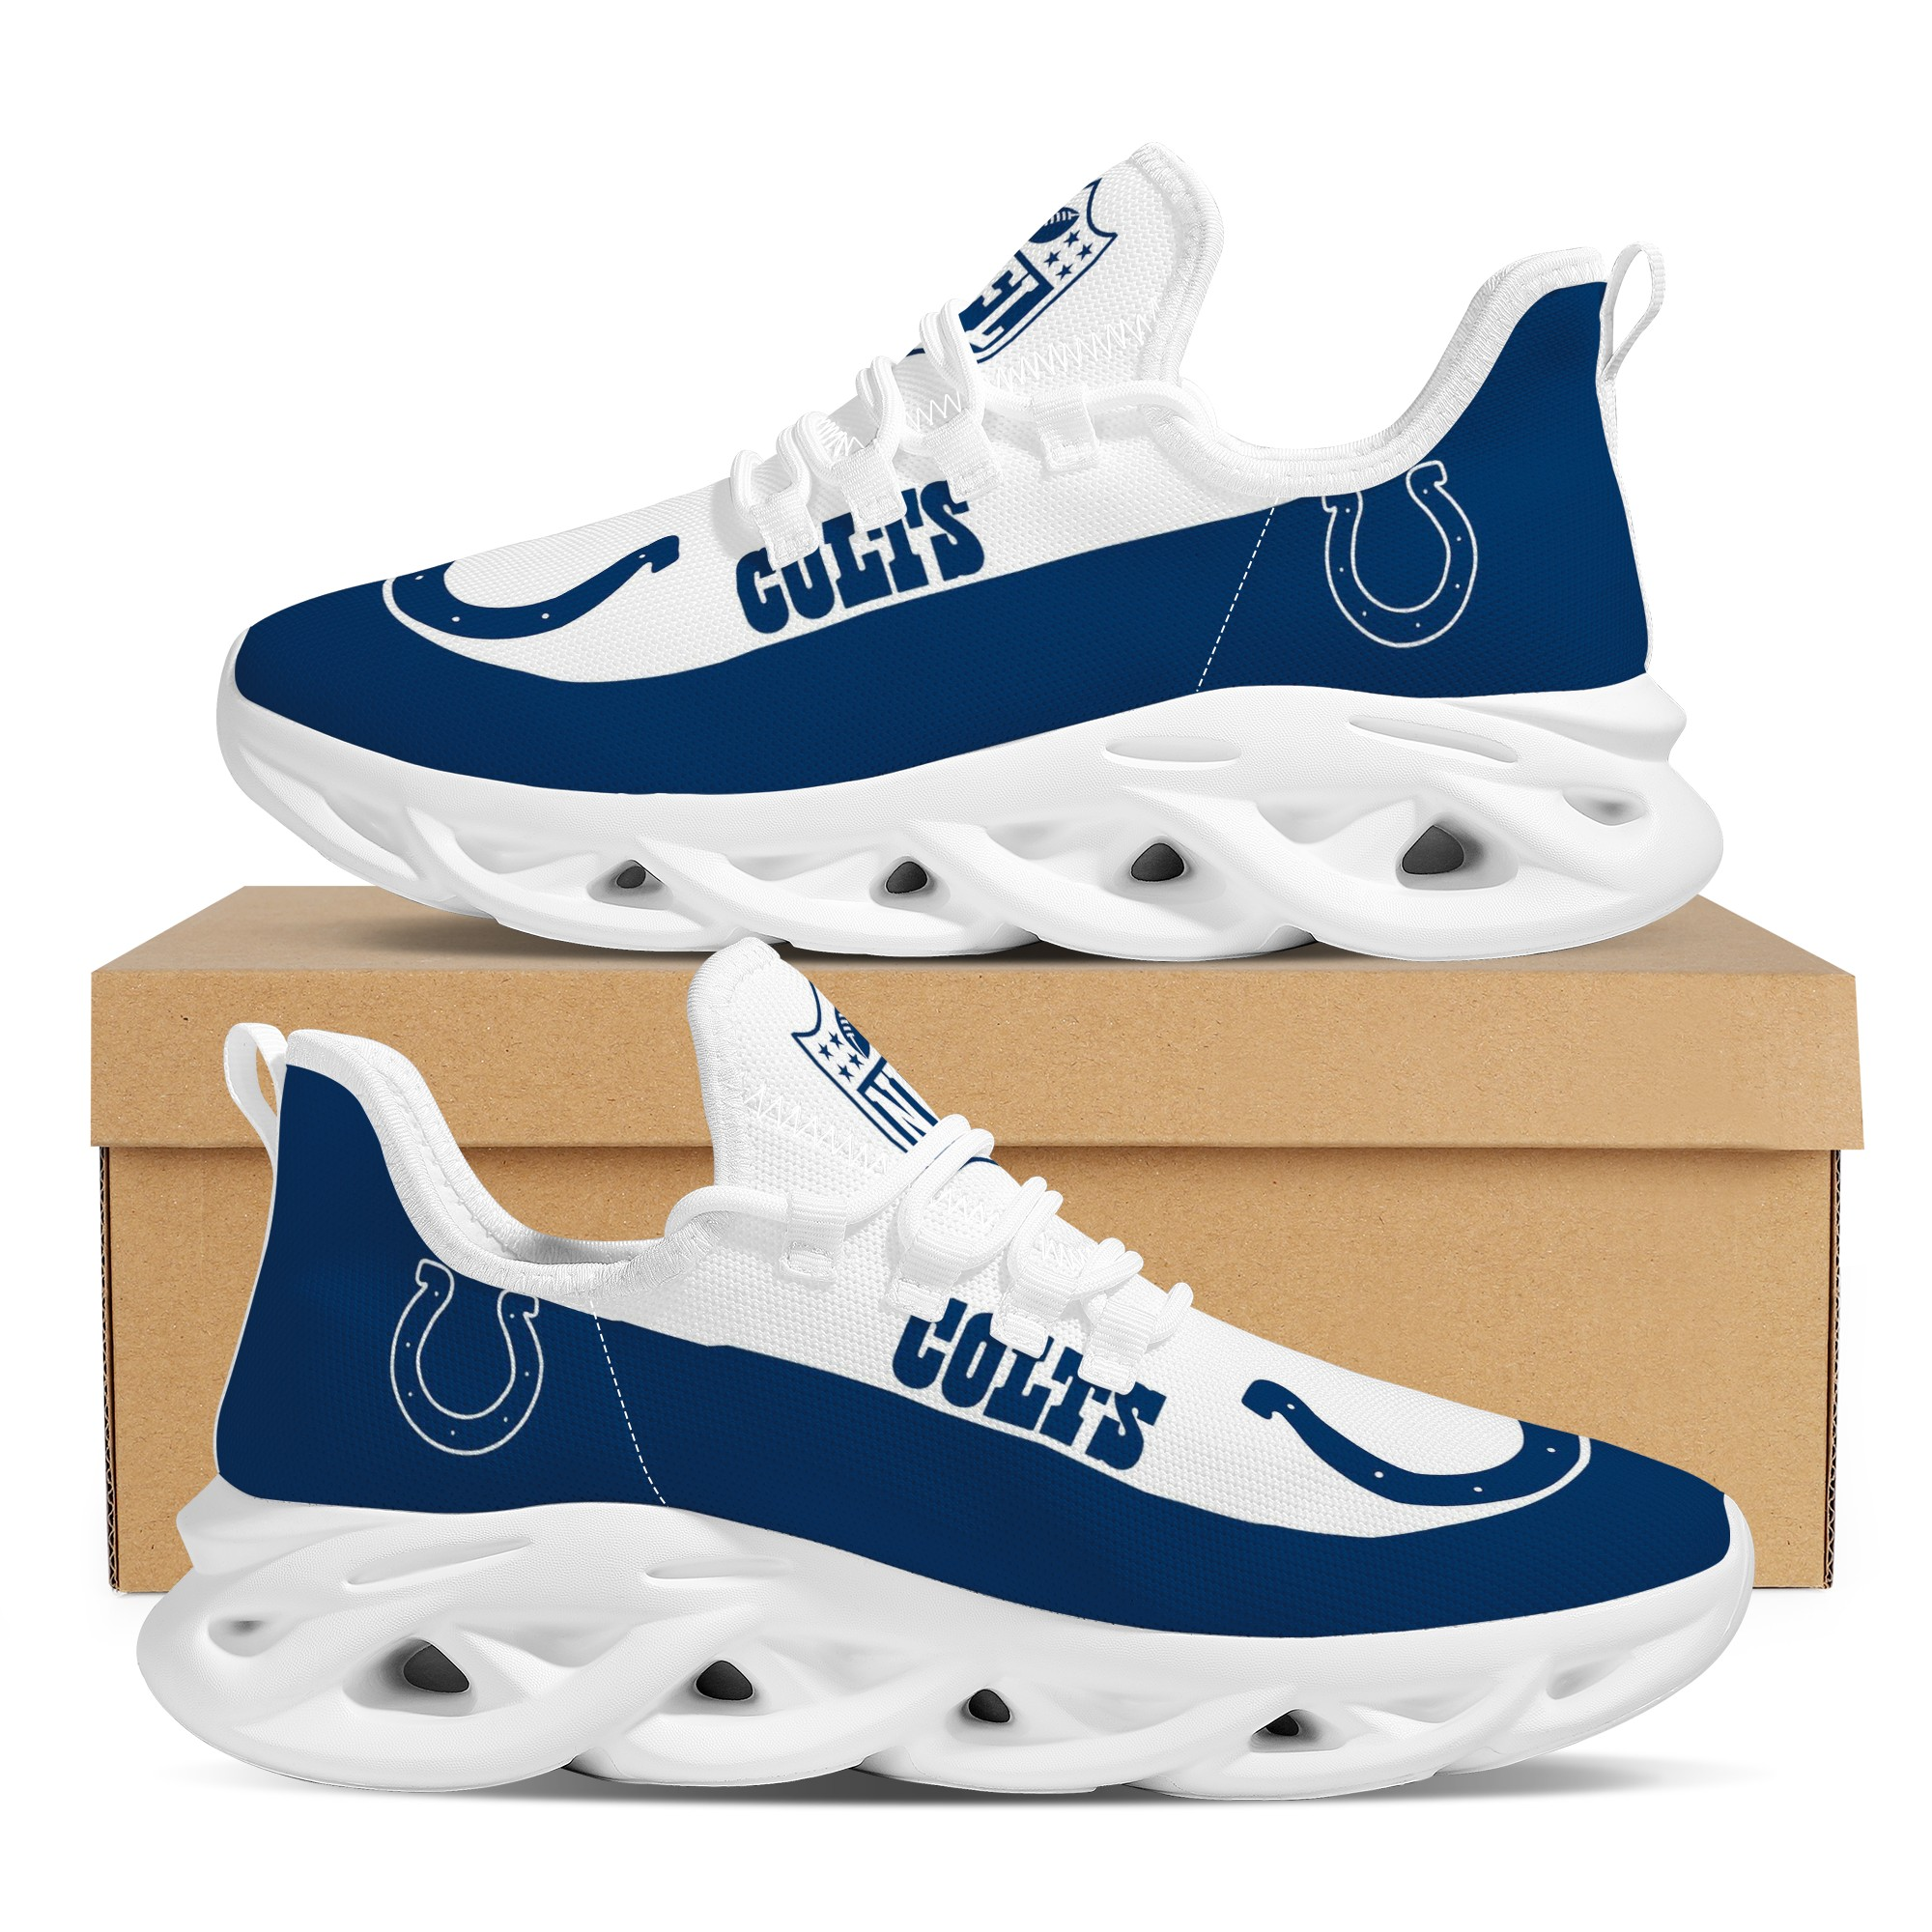 Men's Indianapolis Colts Flex Control Sneakers 004